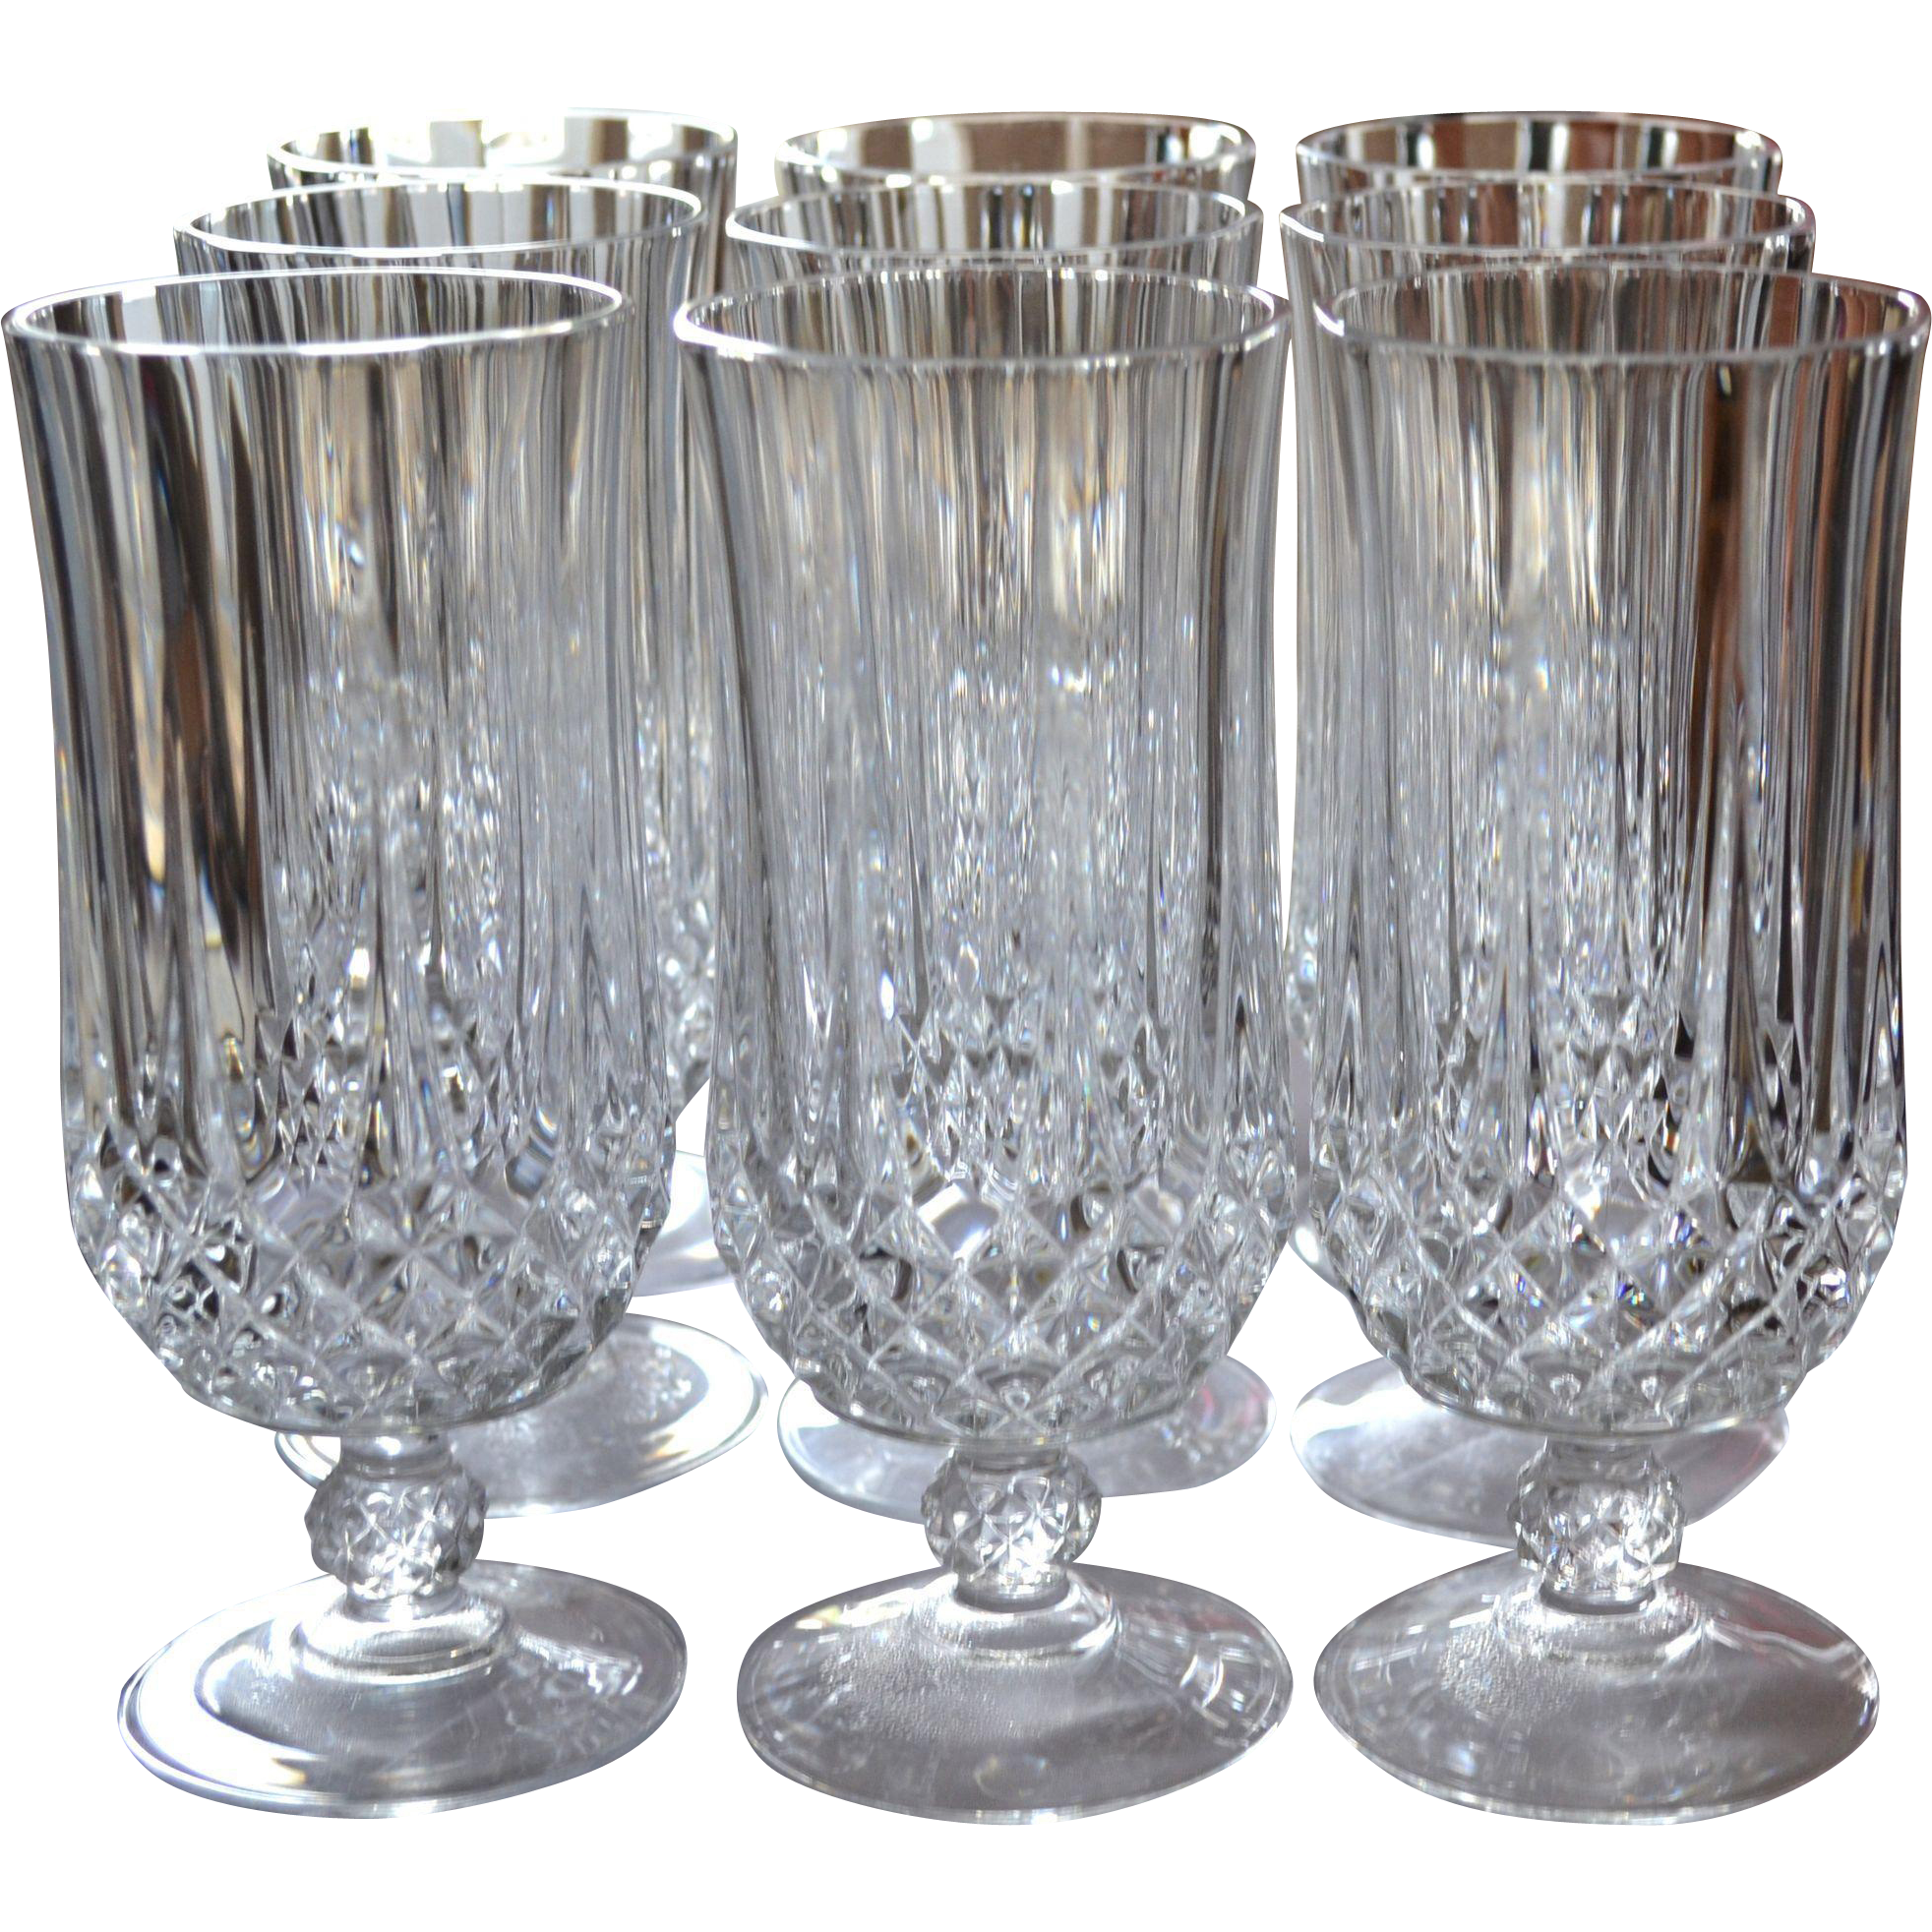 Cristal Darques Verres.Cristal D Arques Longchamp Set Of 9 Lead Crystal Iced Tea Glasses